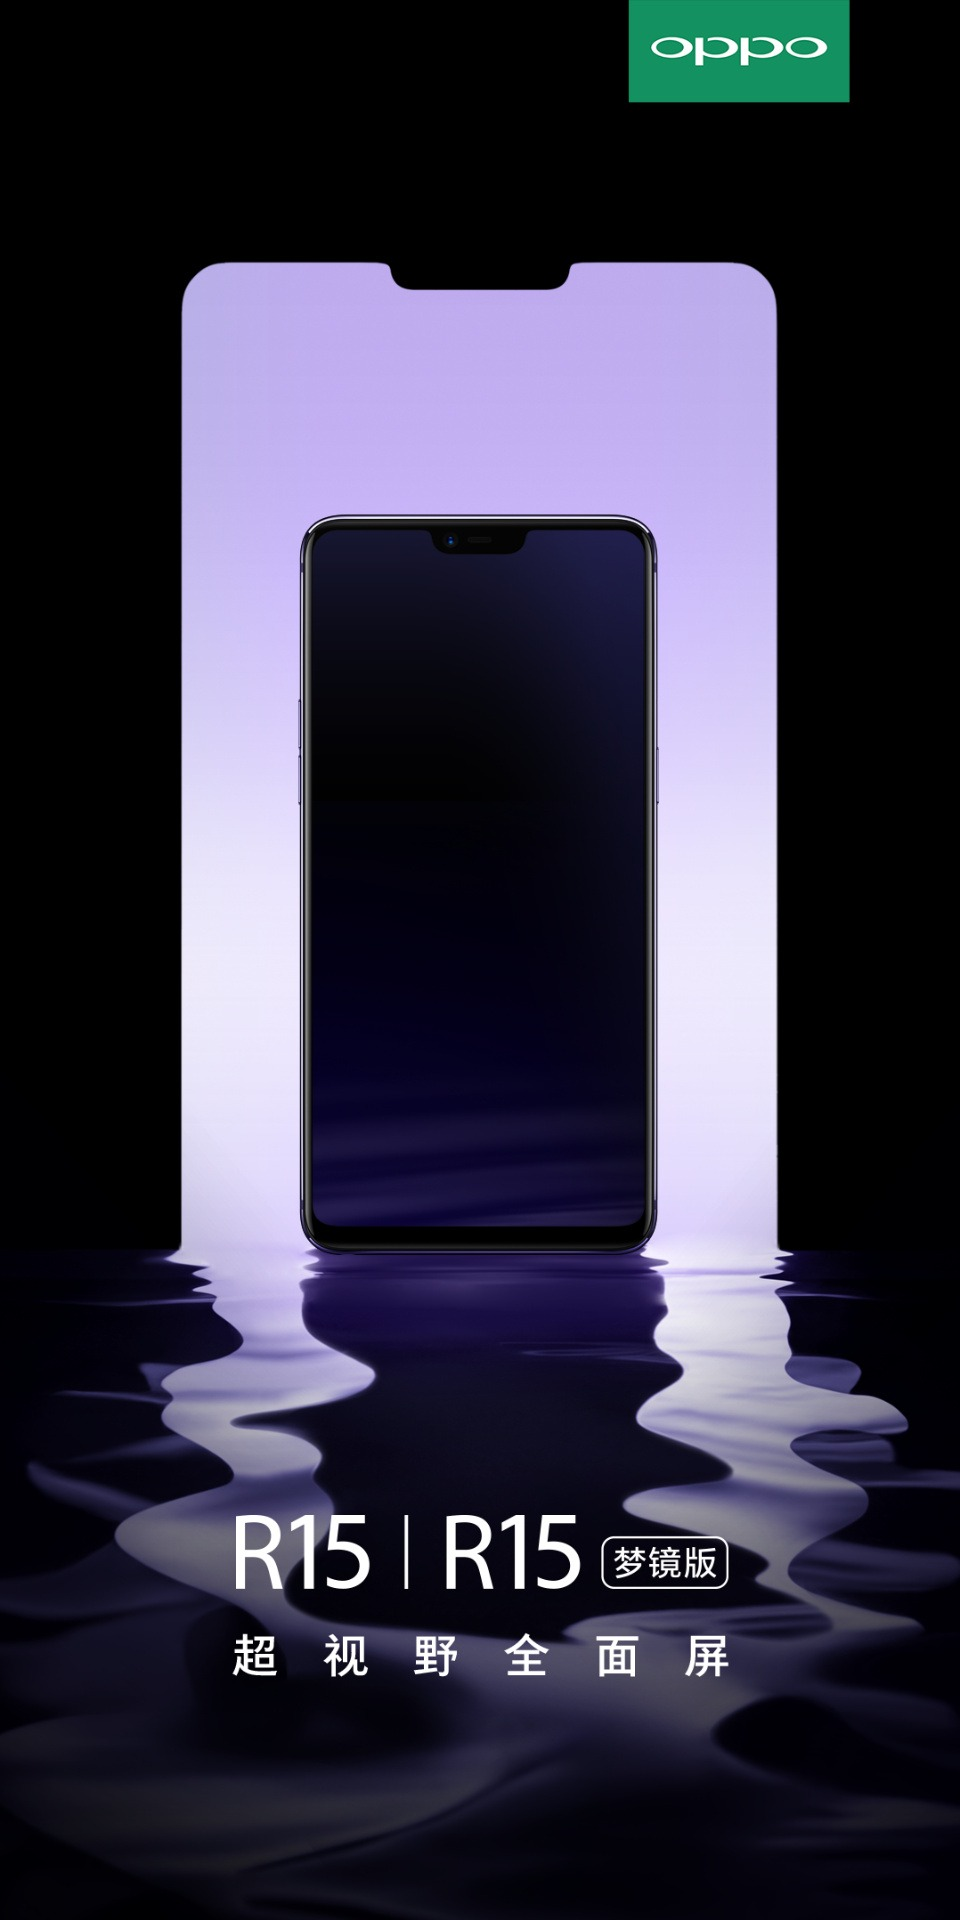 Oppo R15 and R15 Plus Teaser